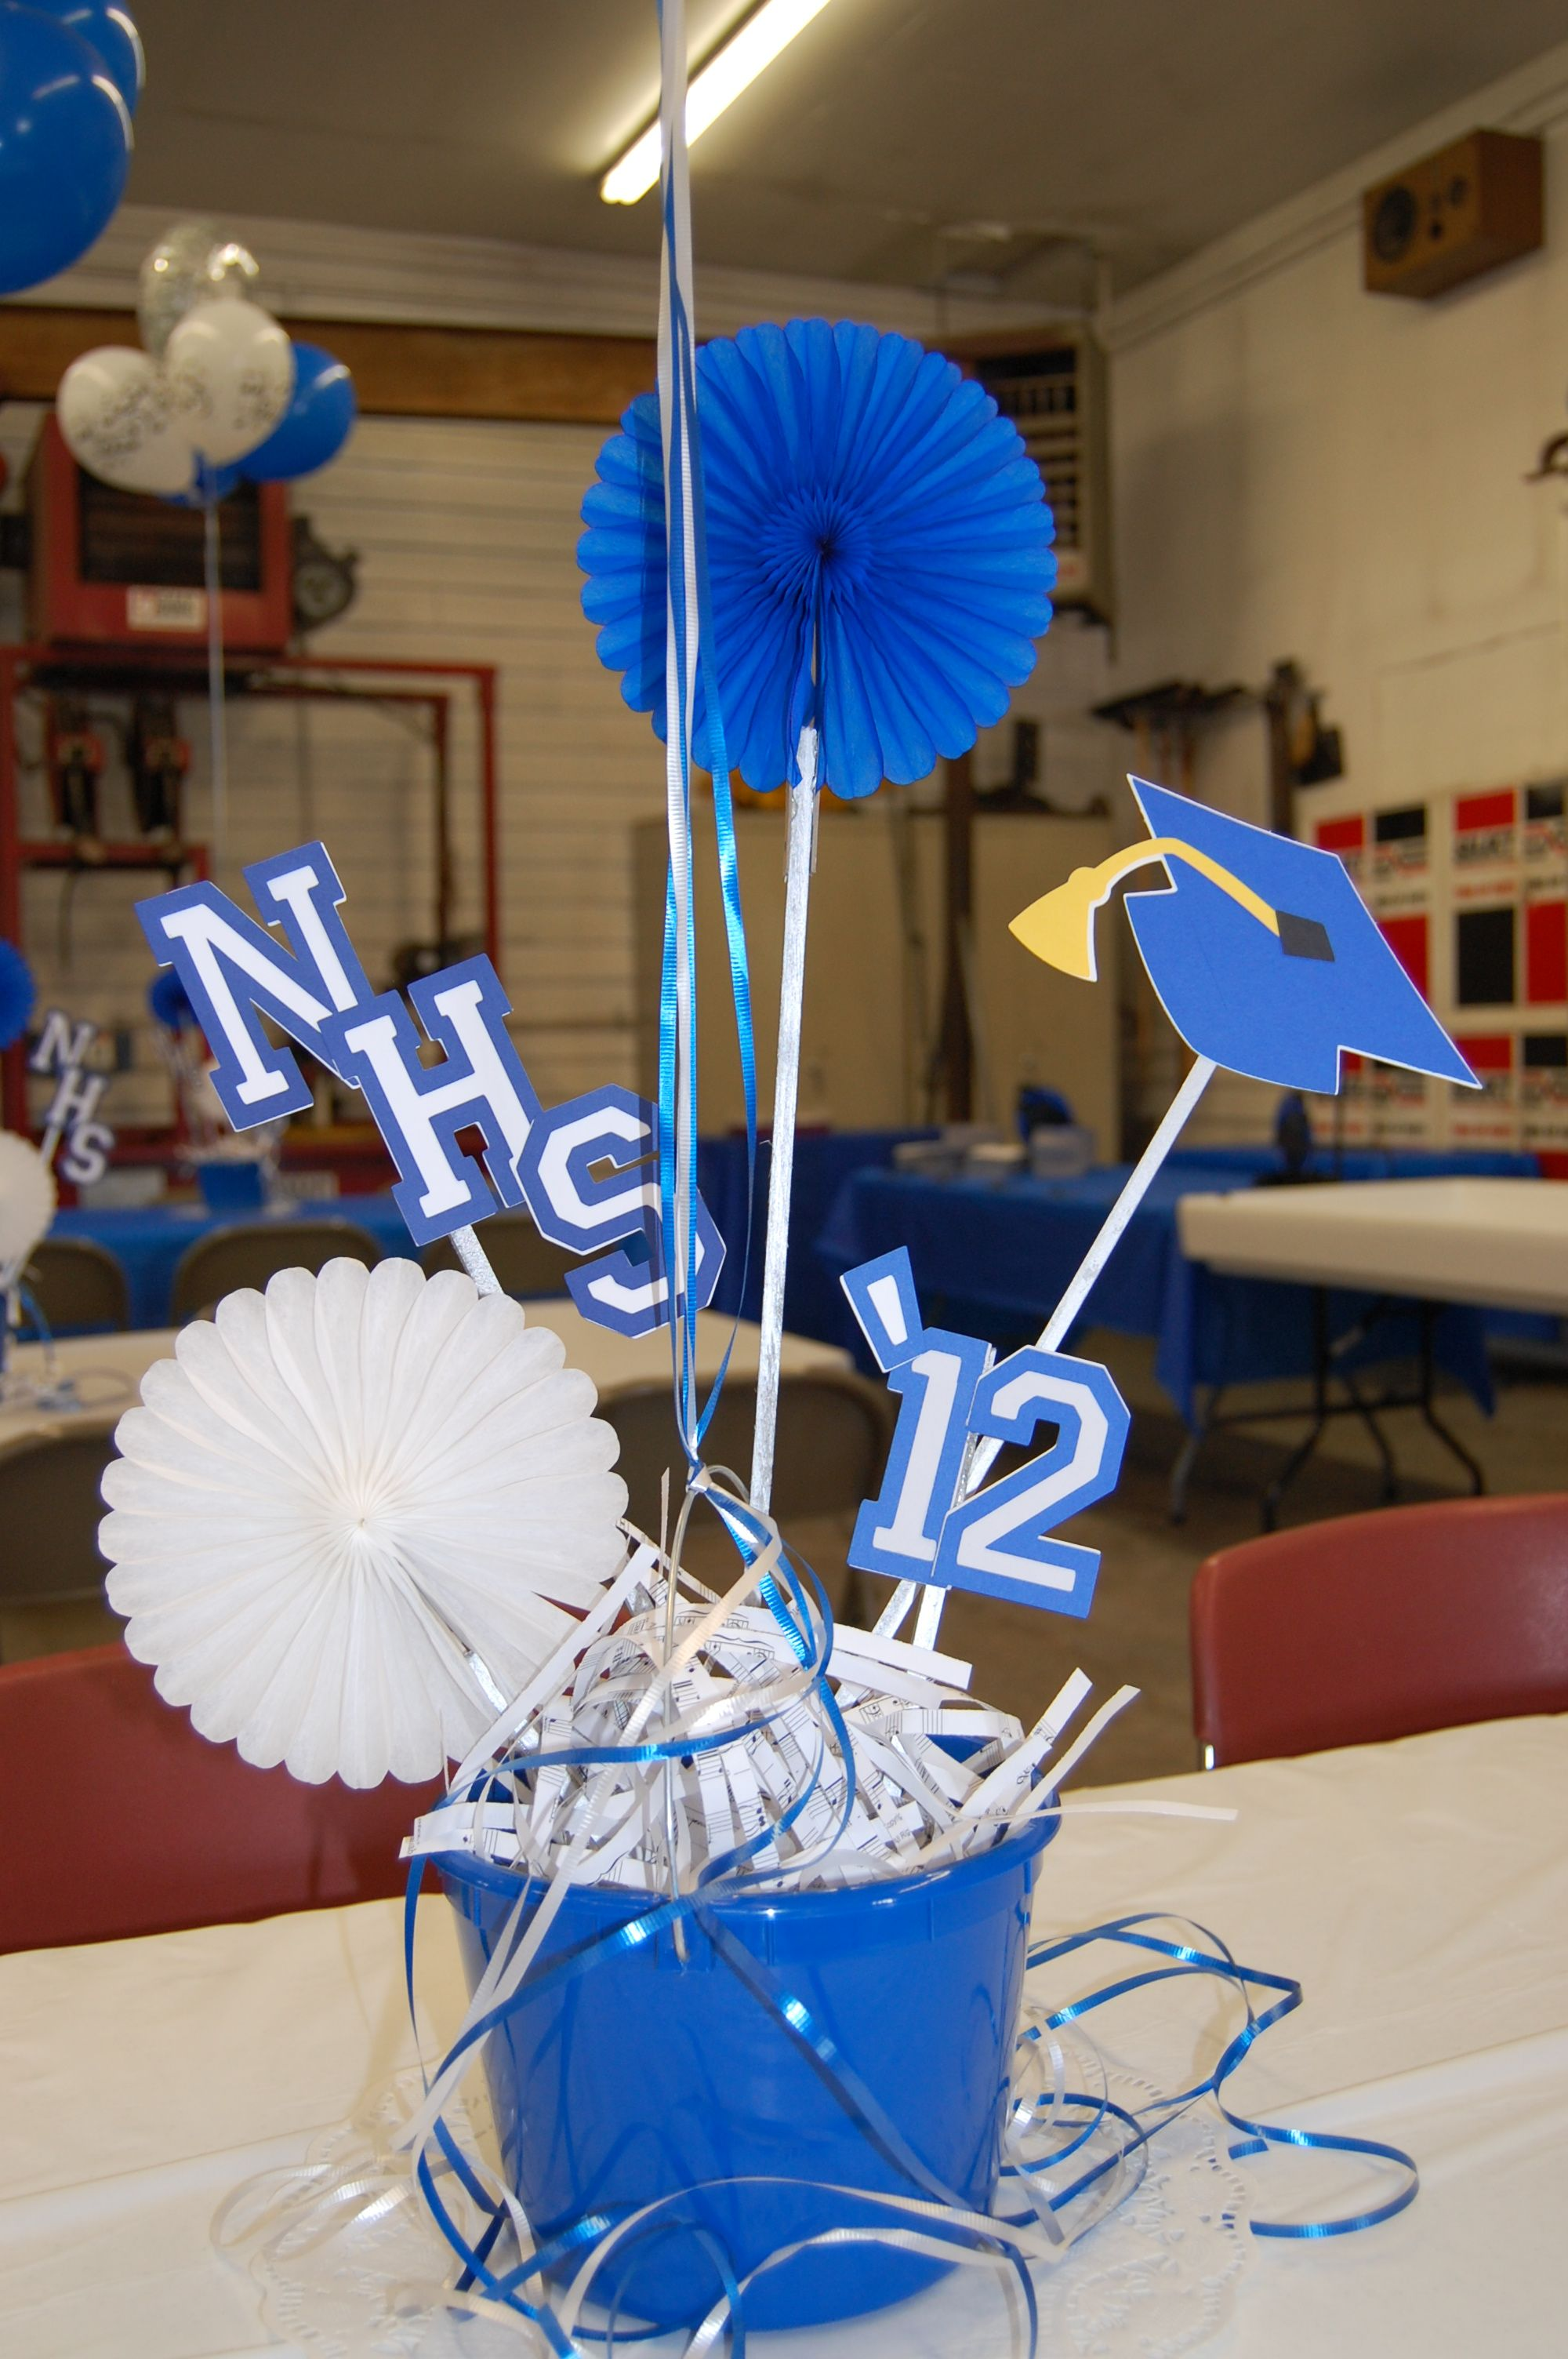 My Graduation Centerpiece Graduation Party Centerpieces Graduation Center Pieces Party Centerpieces